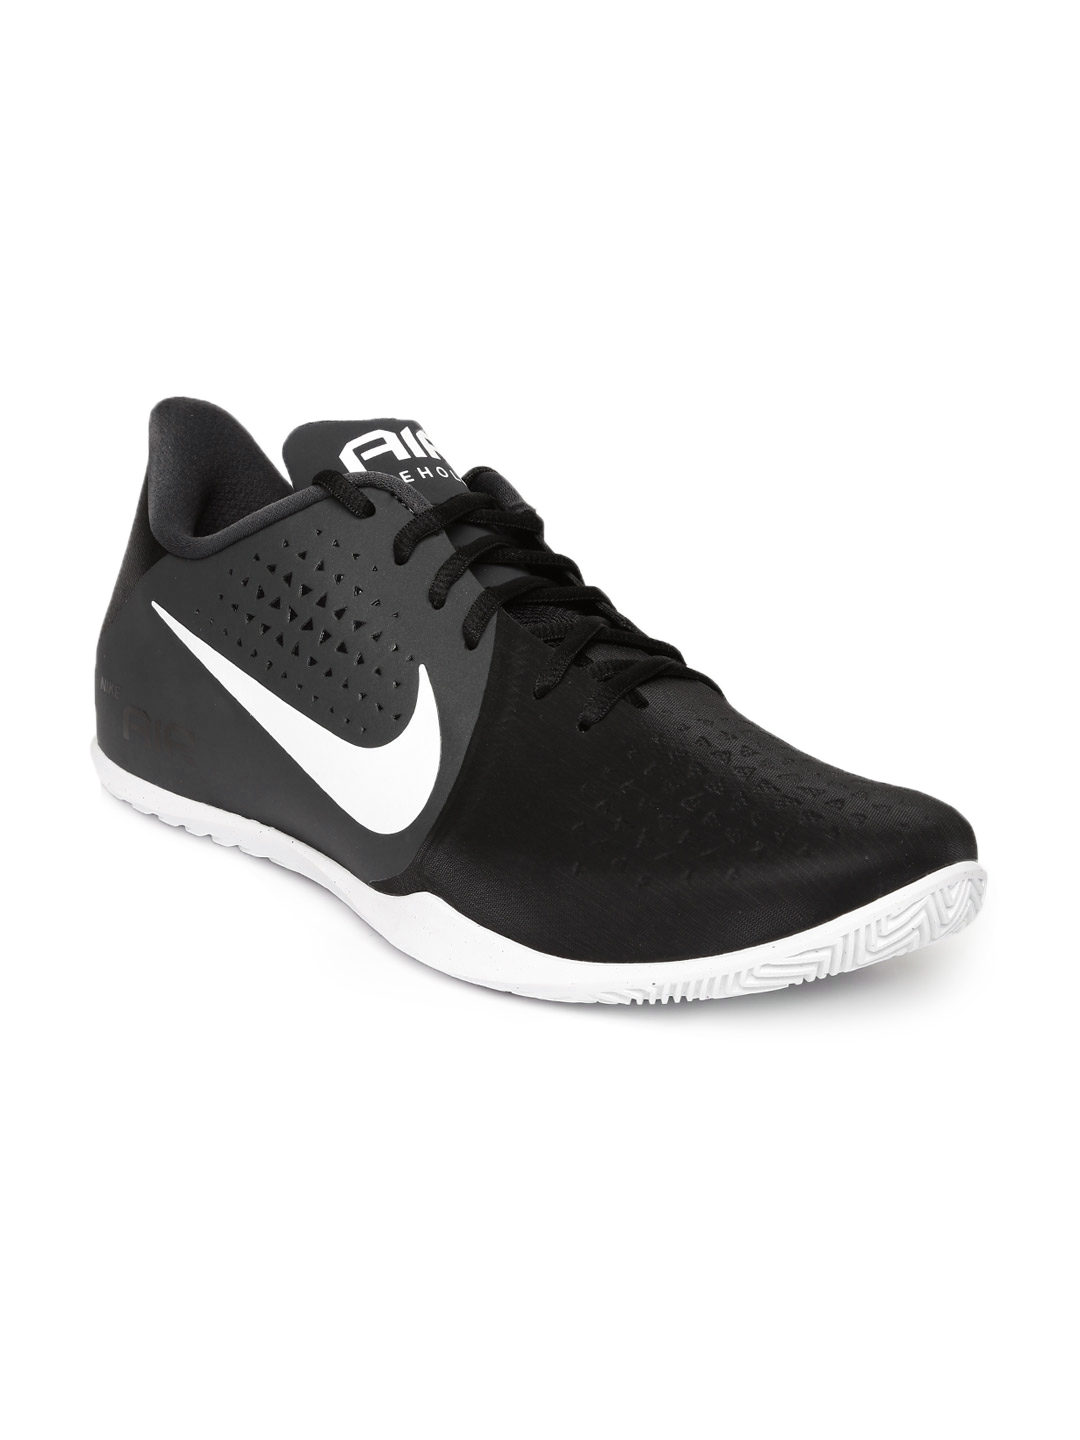 0eb6d6be613b Buy Nike Men Black Air Behold Low Basketball Shoes - Sports Shoes ...